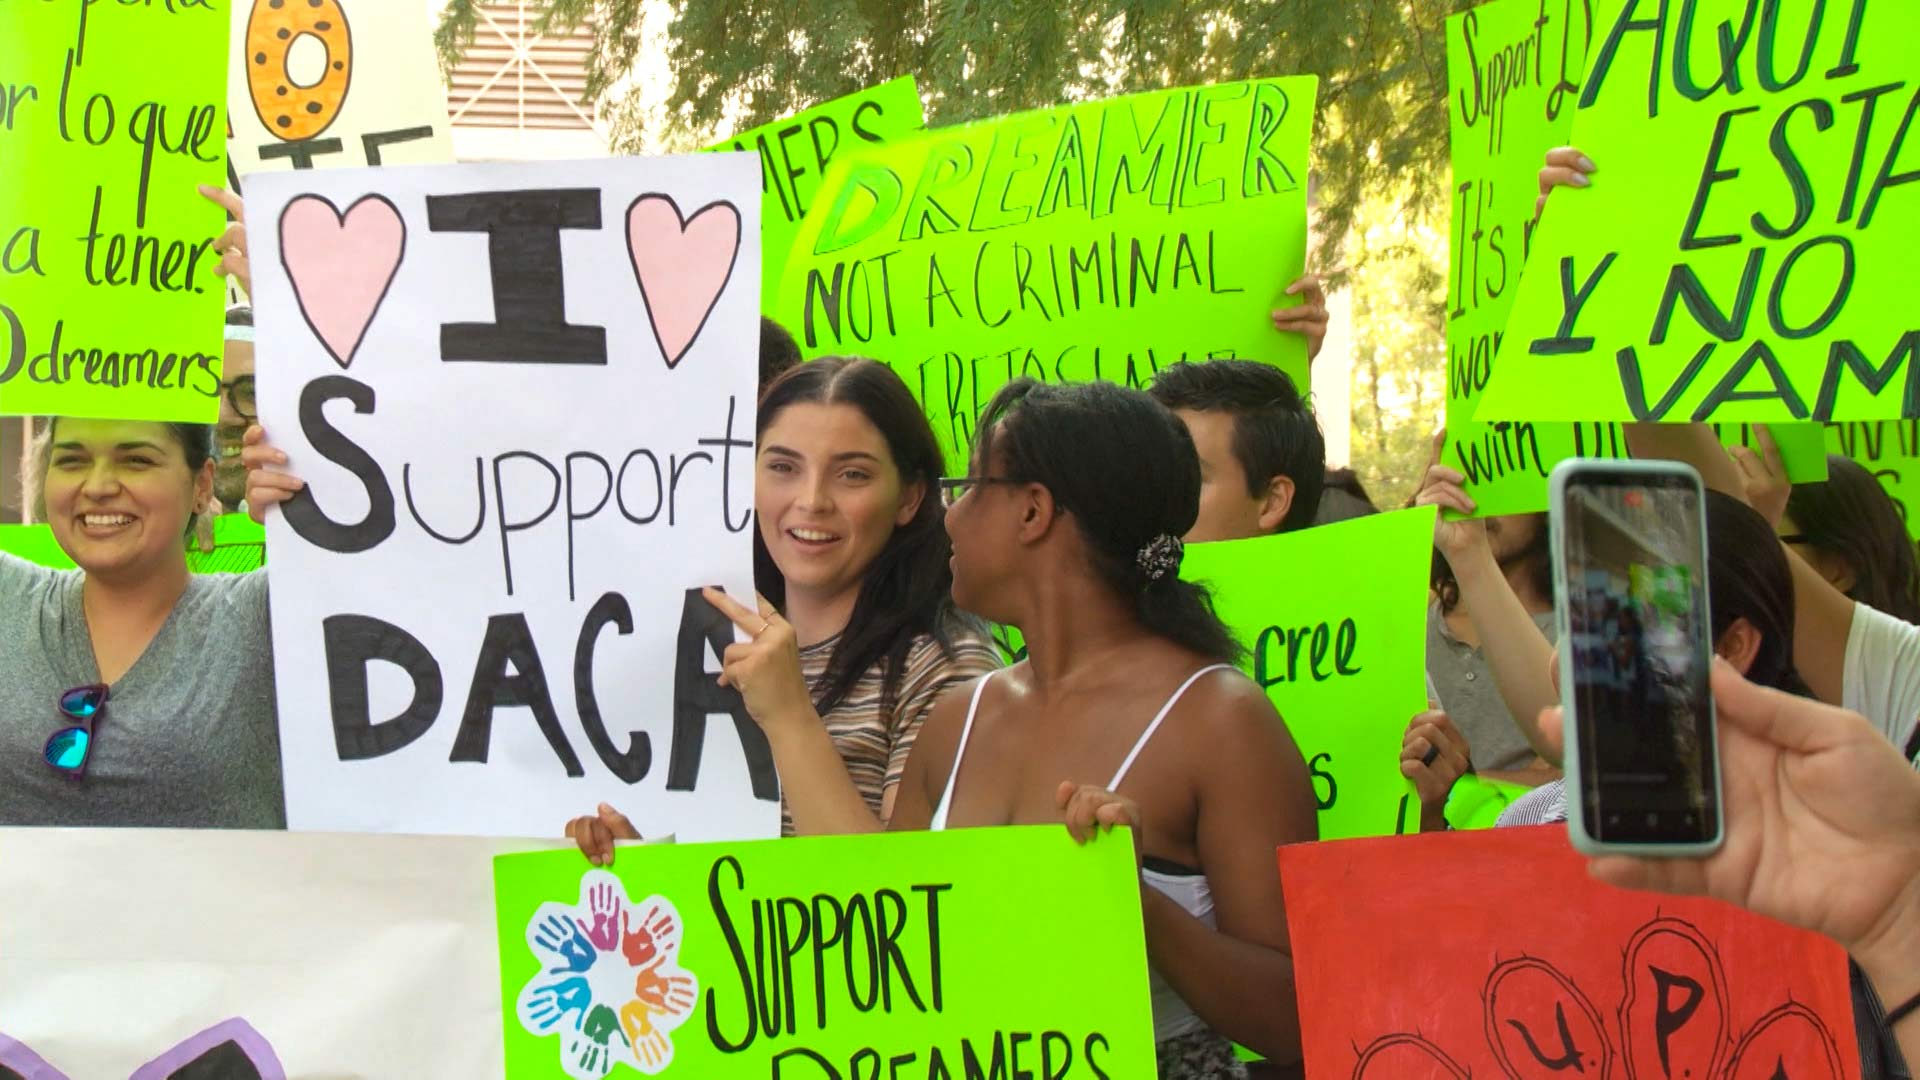 Demonstrators protest in favor of protections for Deferred Action for Childhood Arrivals recipients.